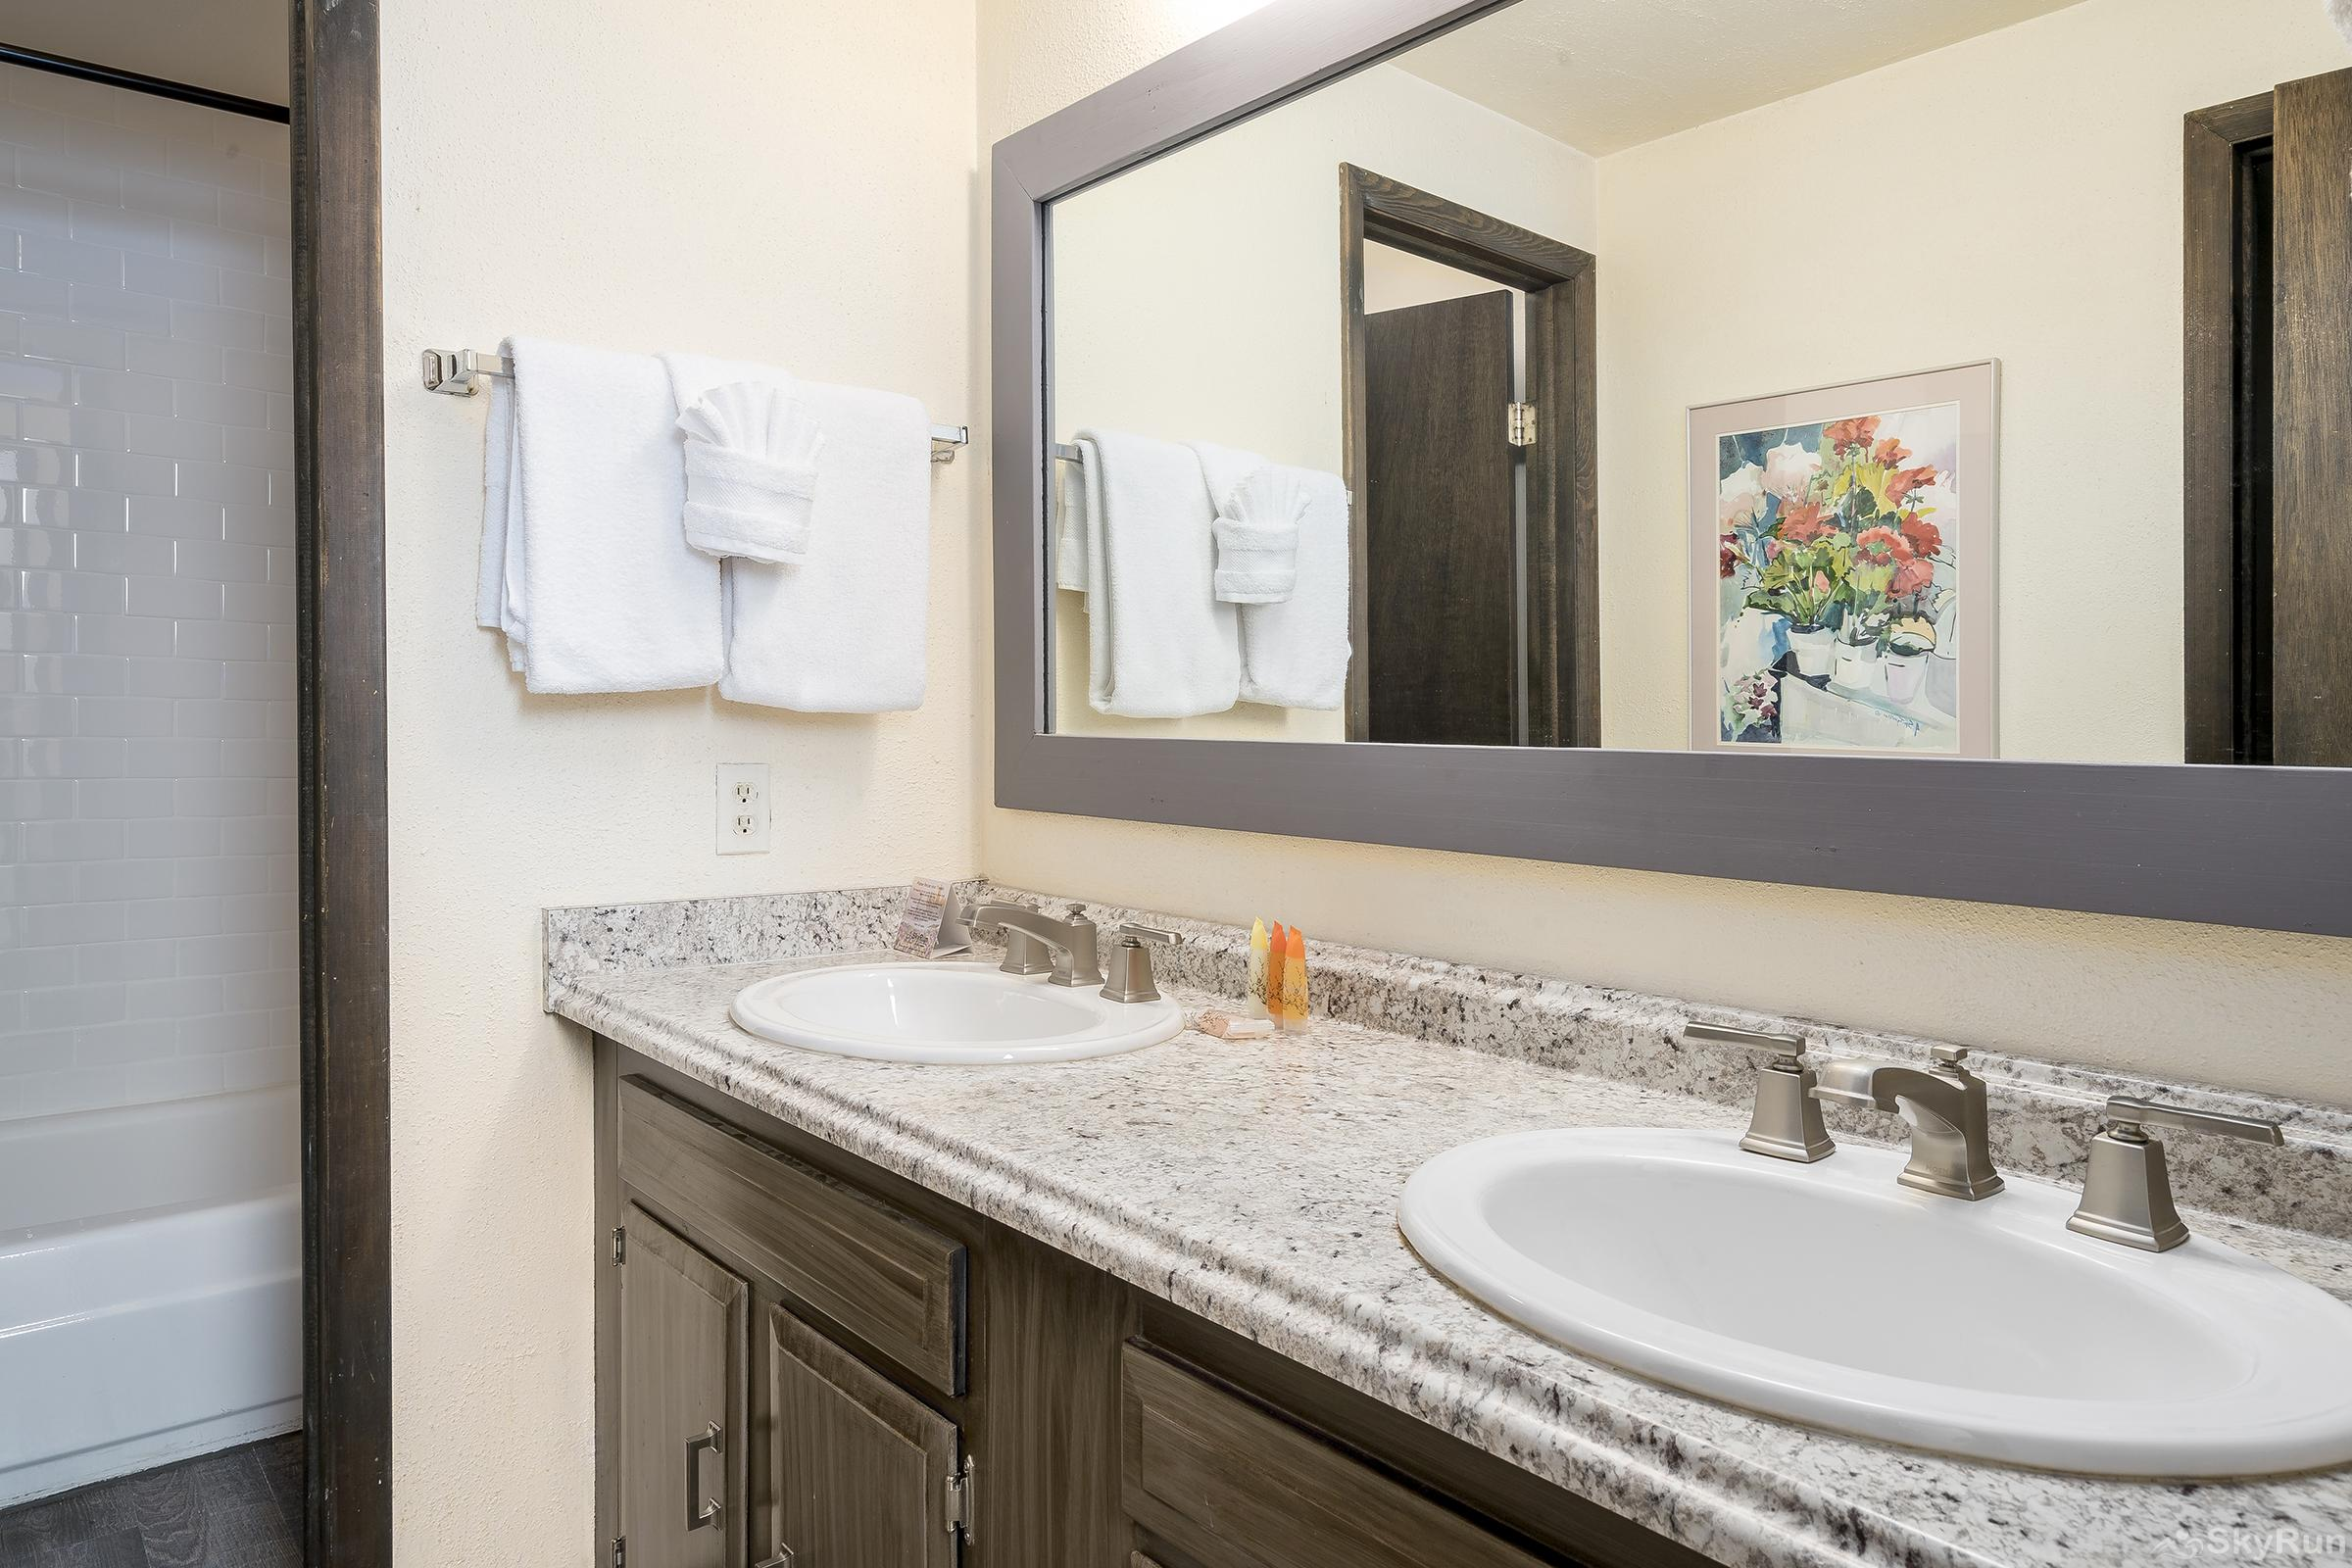 Herbage Townhomes E1 Guests can enjoy their own ensuite bathroom.